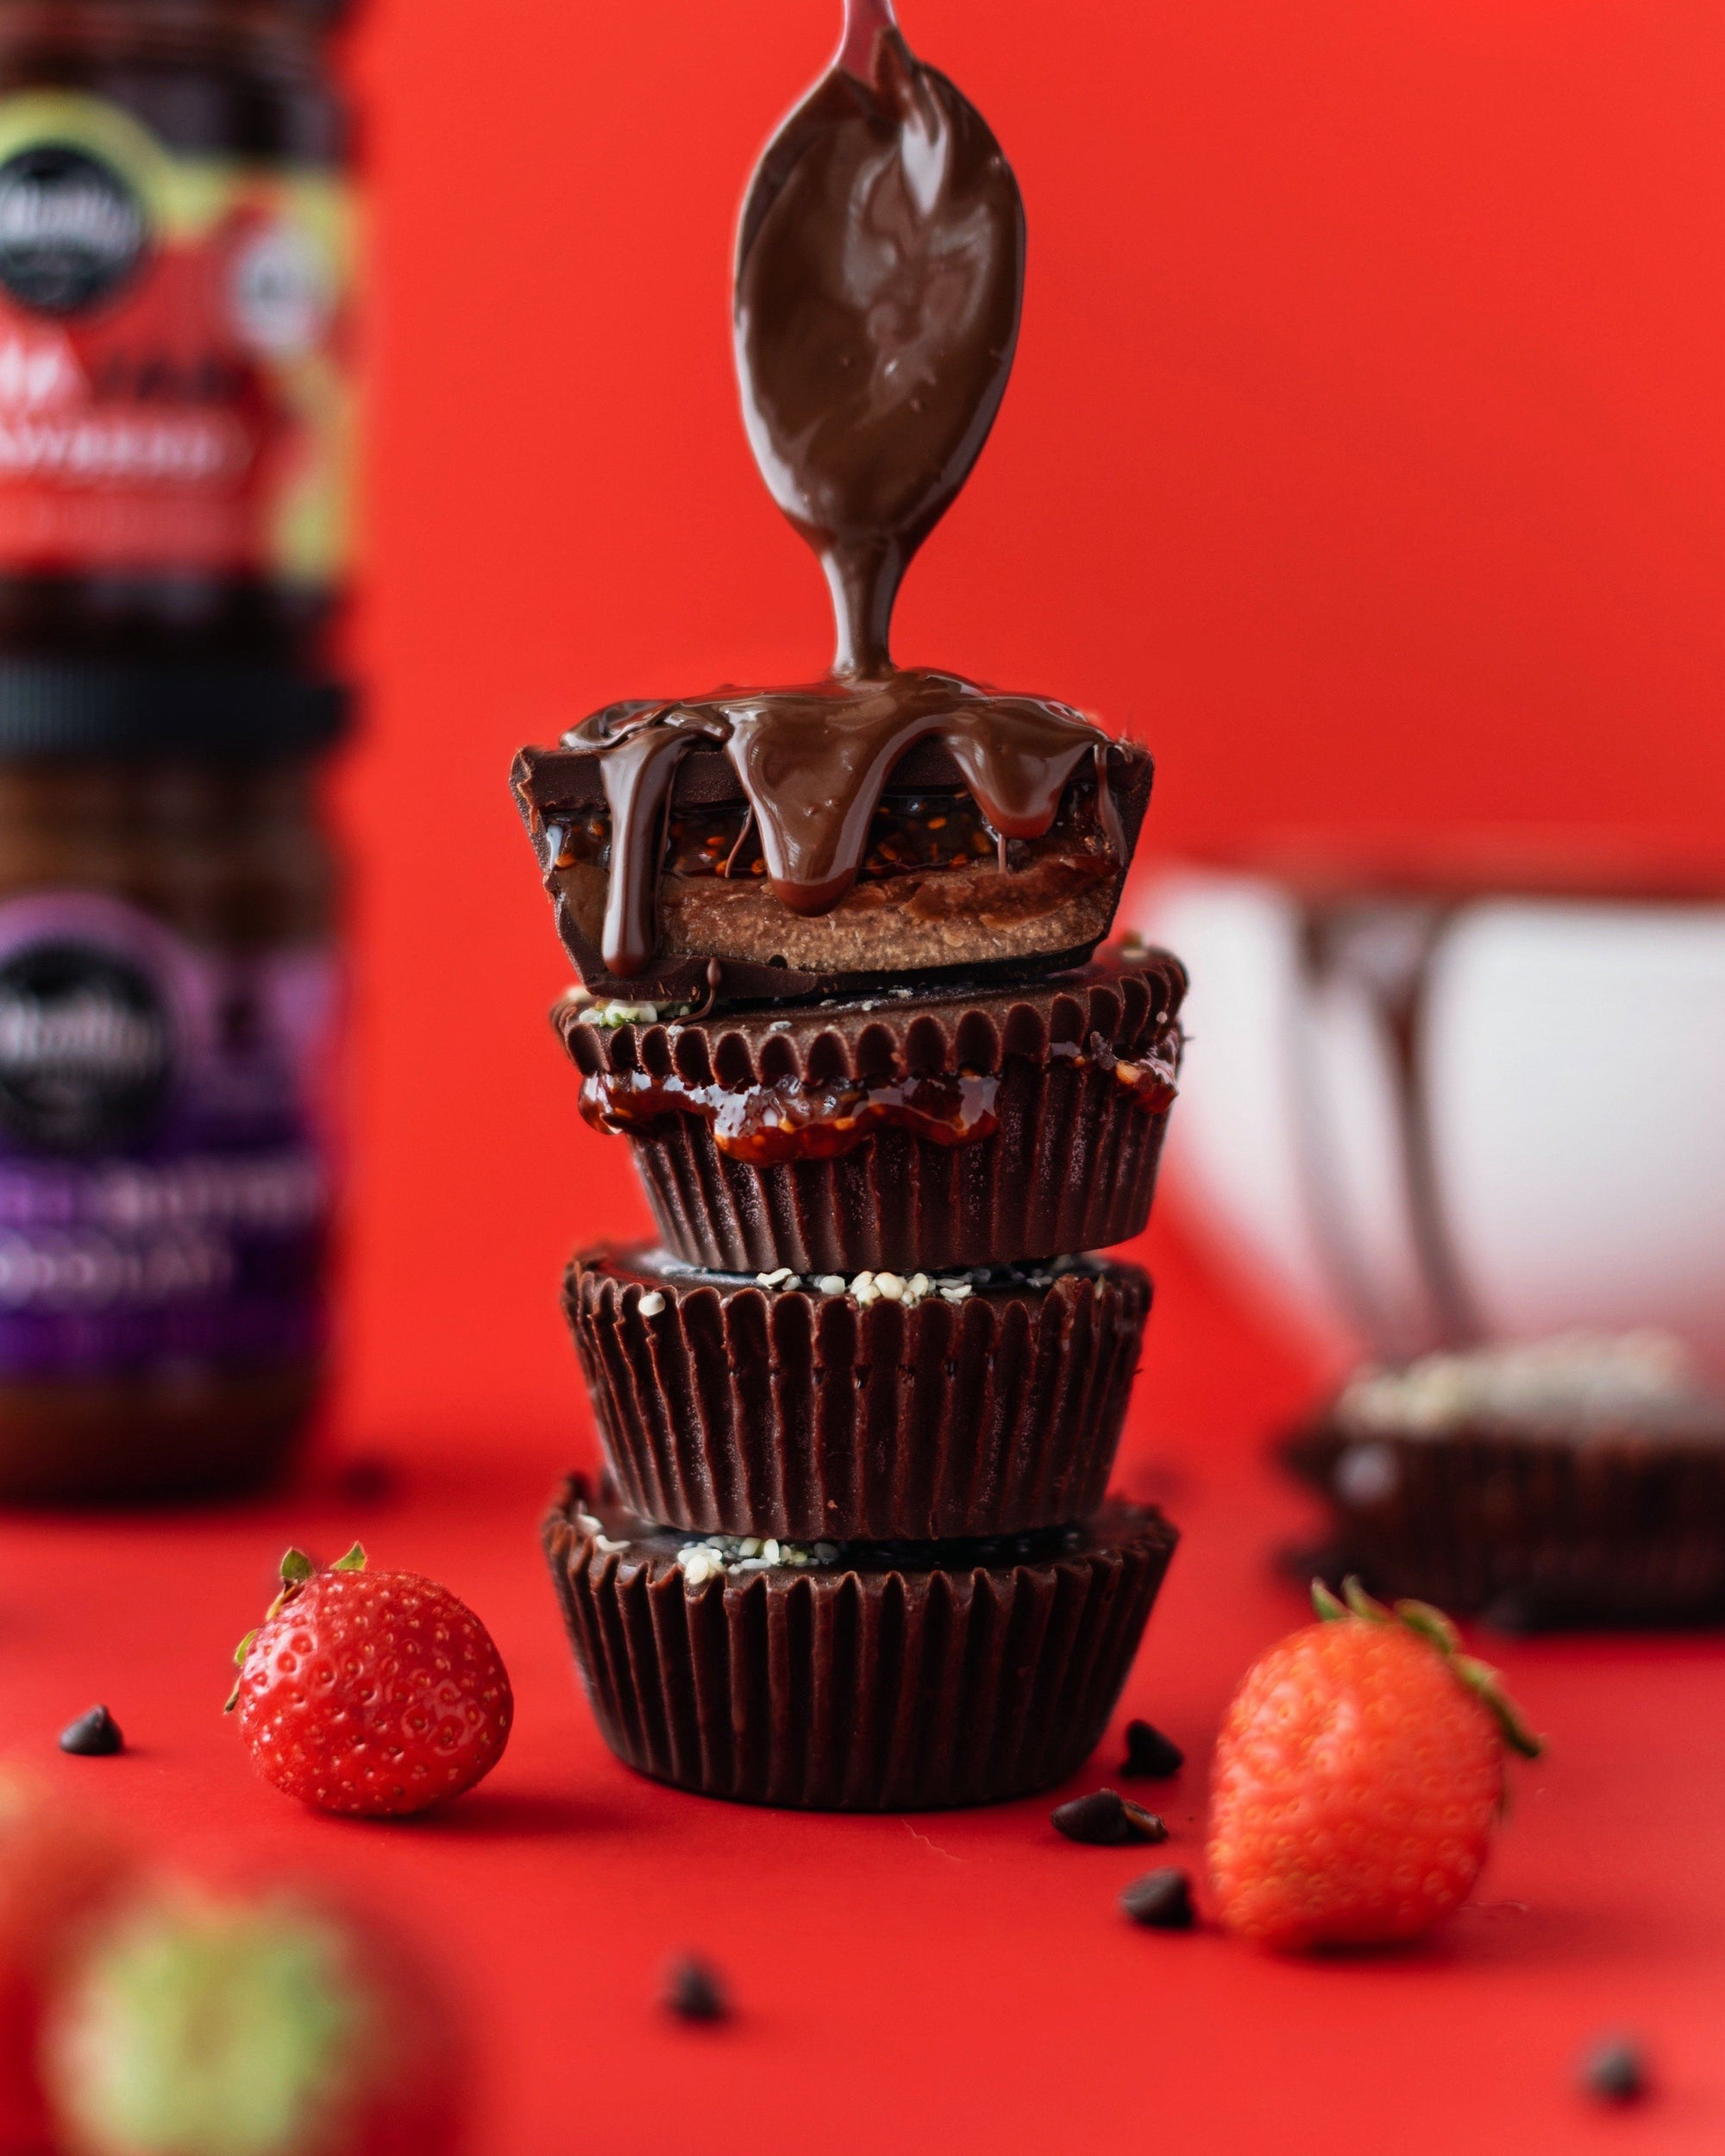 Strawberry Chia Jam Chocolate Cups (Keto, vegan, dairy-free, allergen-friendly)